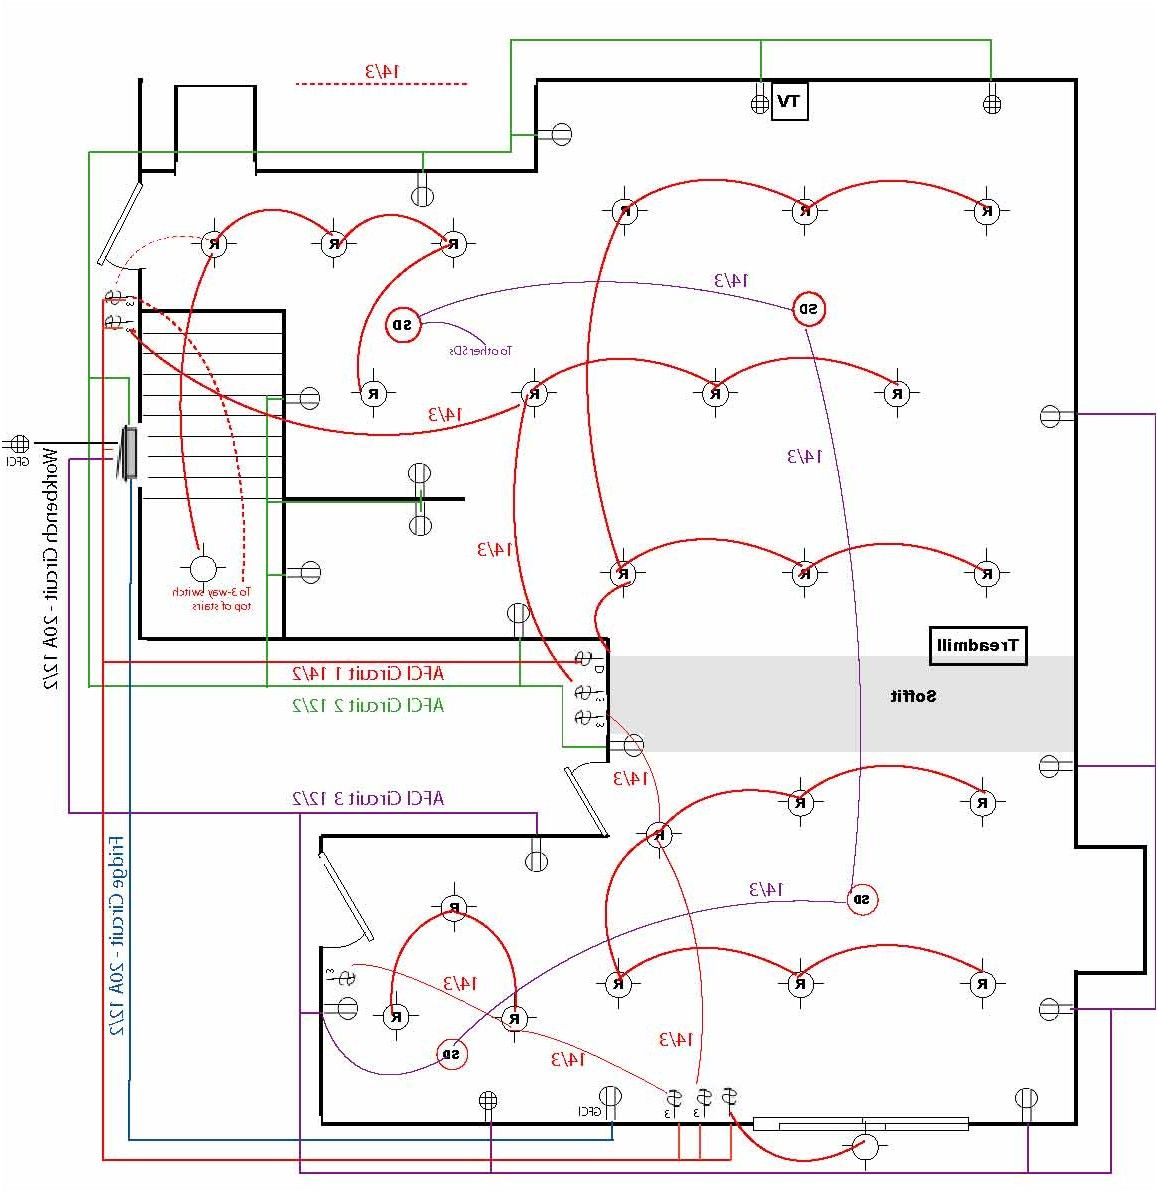 basement wiring diagram review for how to wire a diagram from rh pinterest com Basement Electrical Prints Basement Electrical Plans